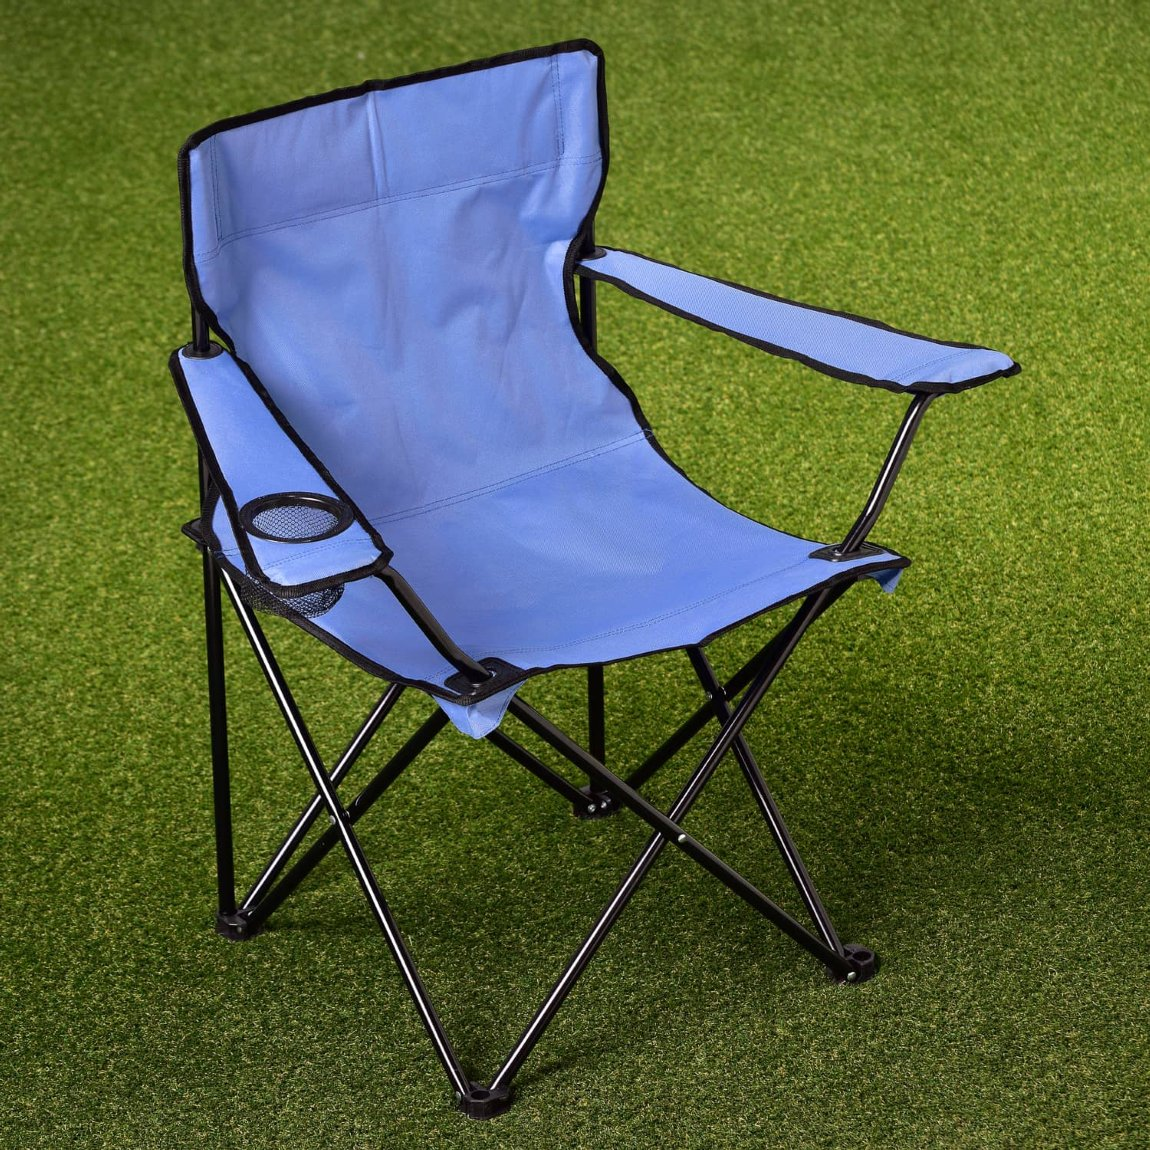 Folding Camping Chair with Cup Holder - Red